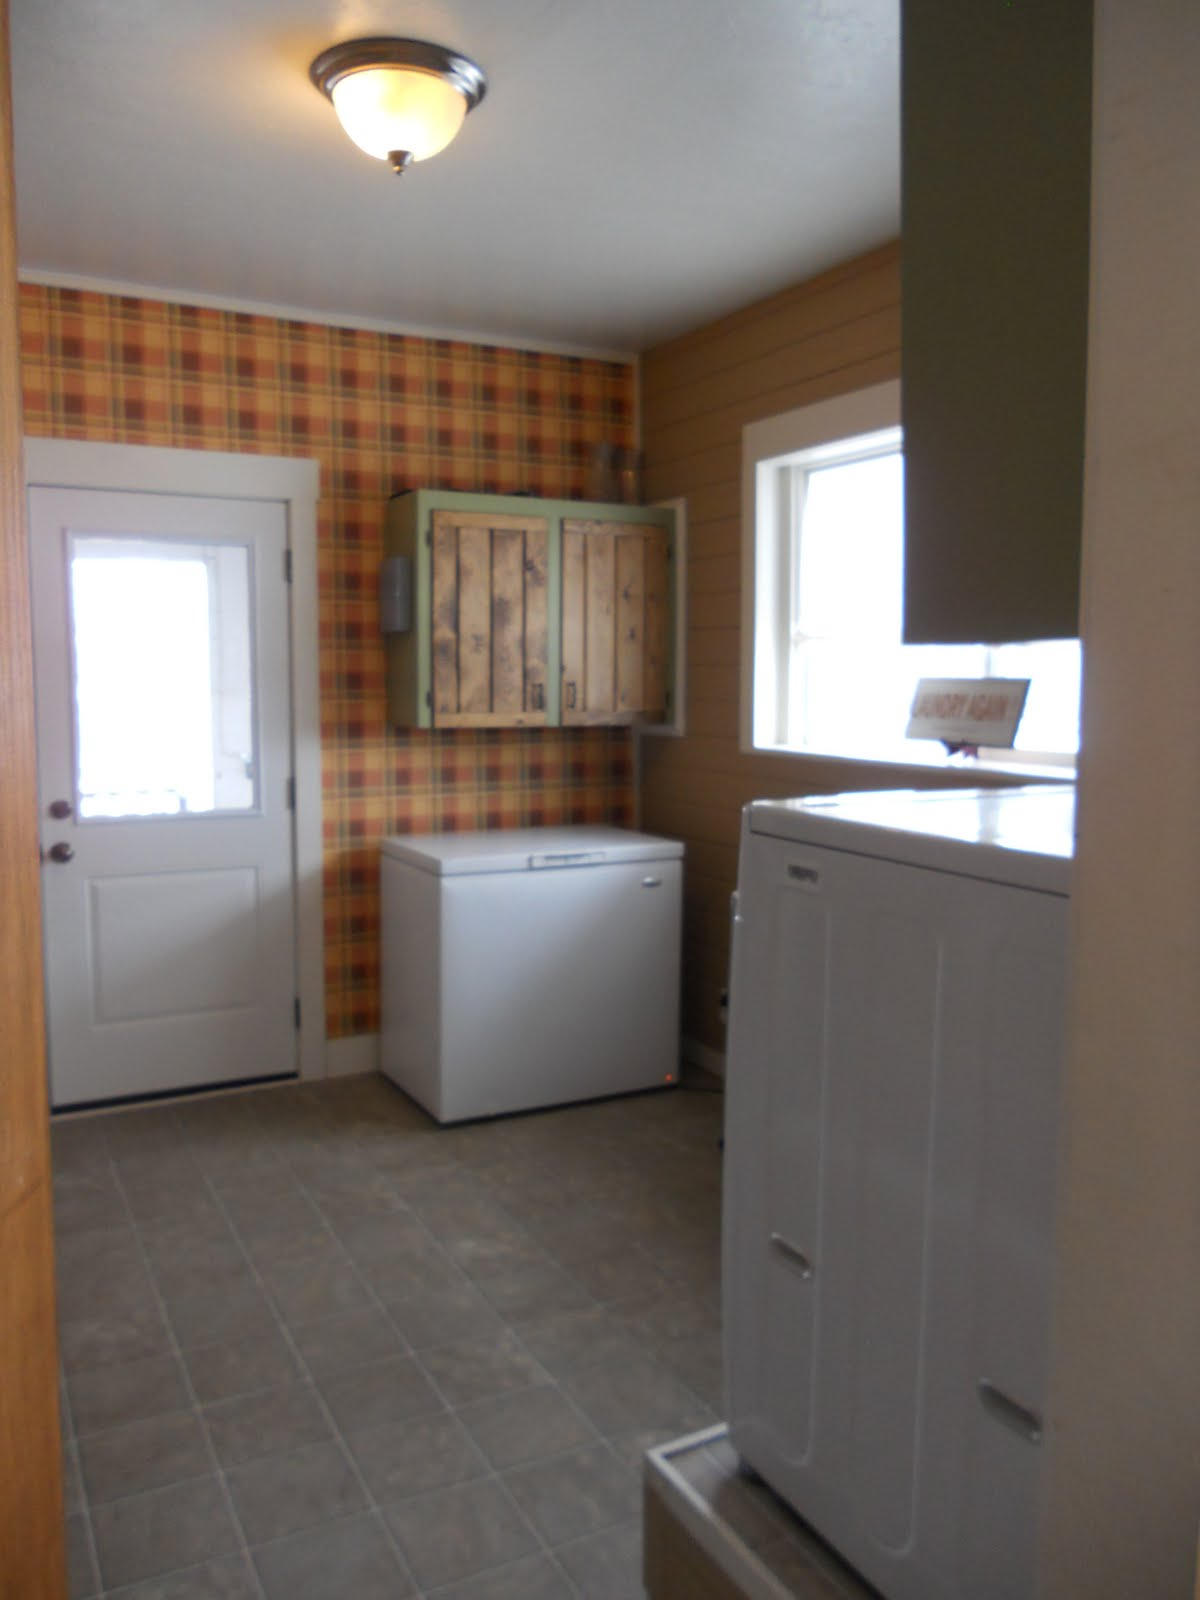 Your New House: Most Amazing Laundry/Mud Room Ever on Amazing Laundry Rooms  id=86130